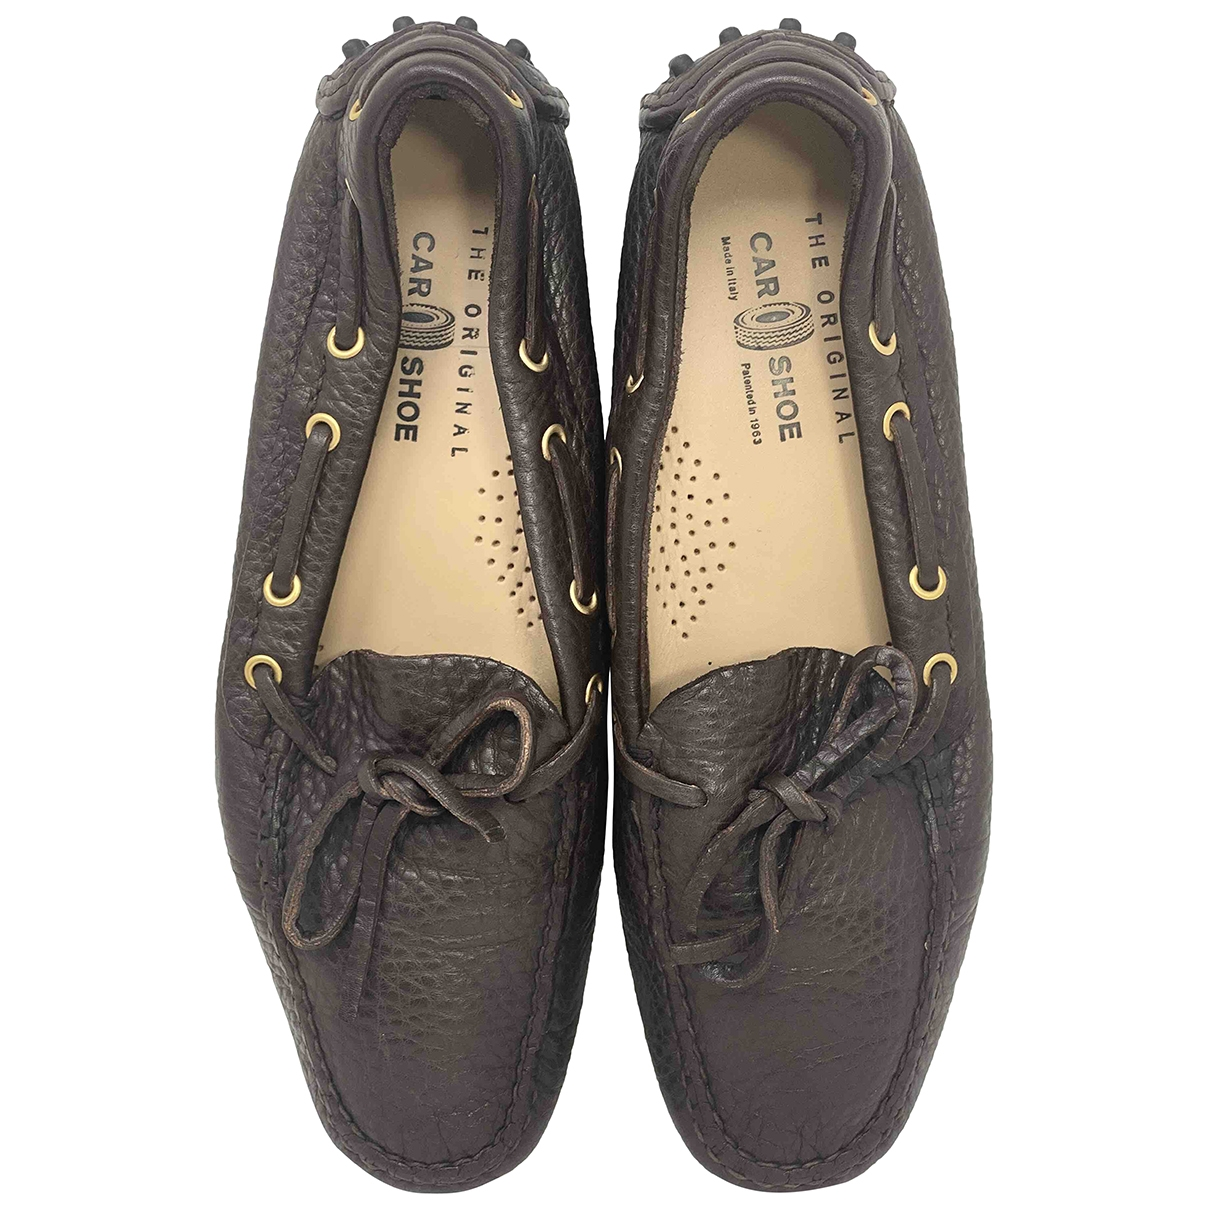 Carshoe \N Brown Leather Flats for Women 37 IT